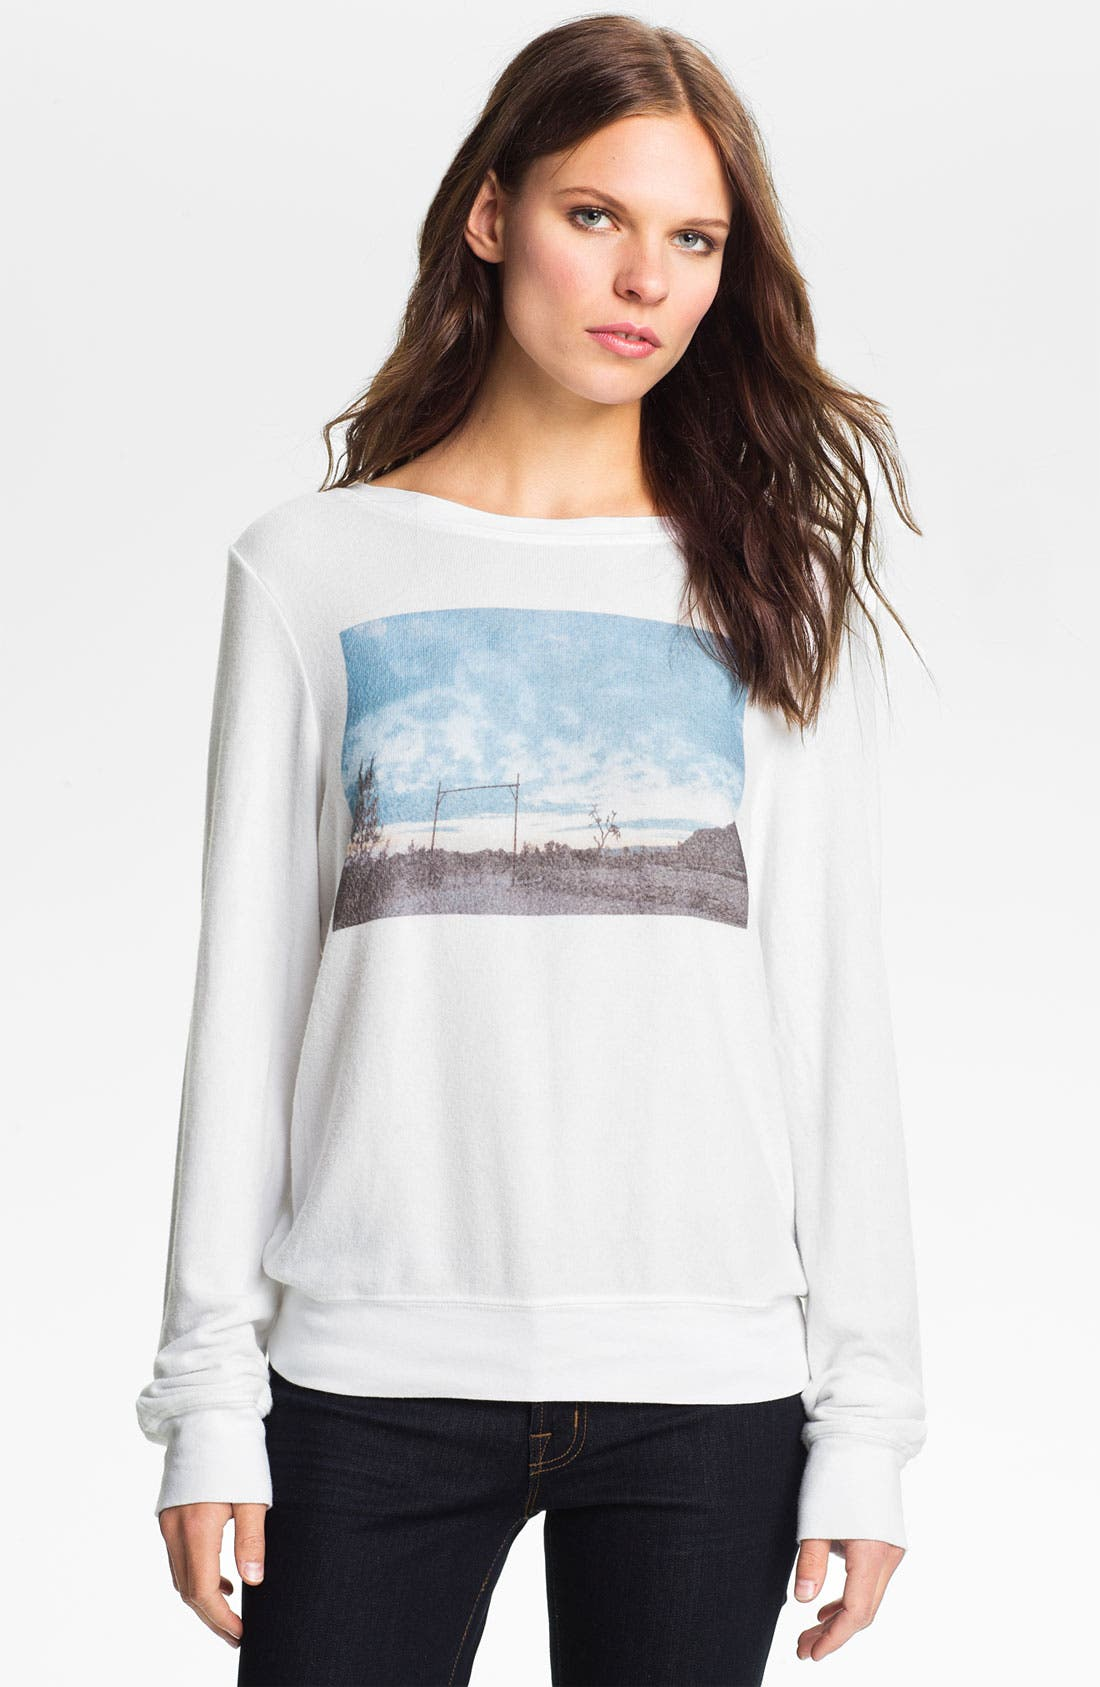 Alternate Image 1 Selected - Wildfox 'Camp Nowhere' Graphic Sweatshirt